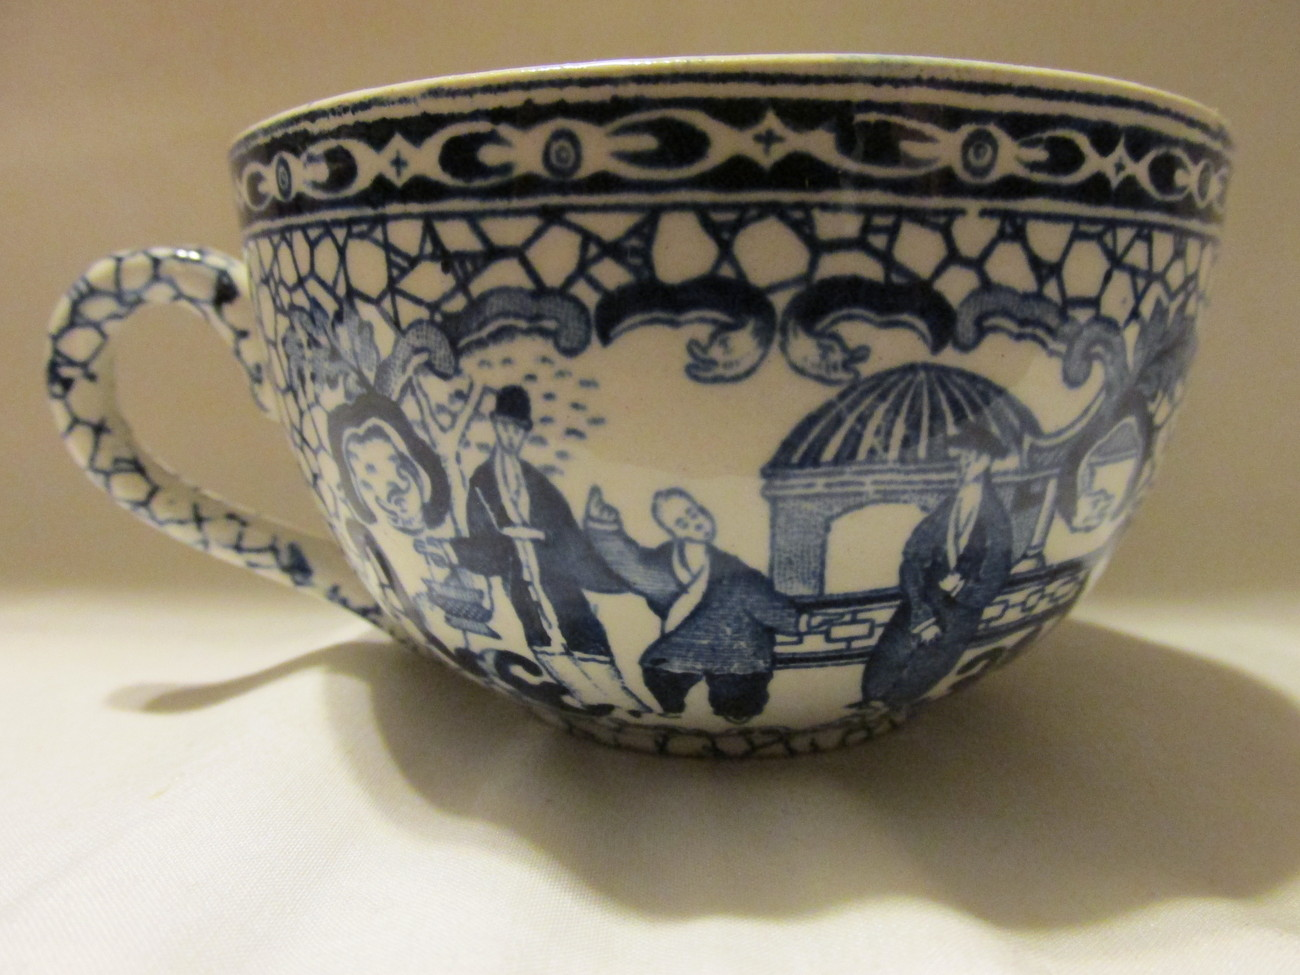 Vintage / Antique William Adams English Ironstone Cup and Saucer - 1913